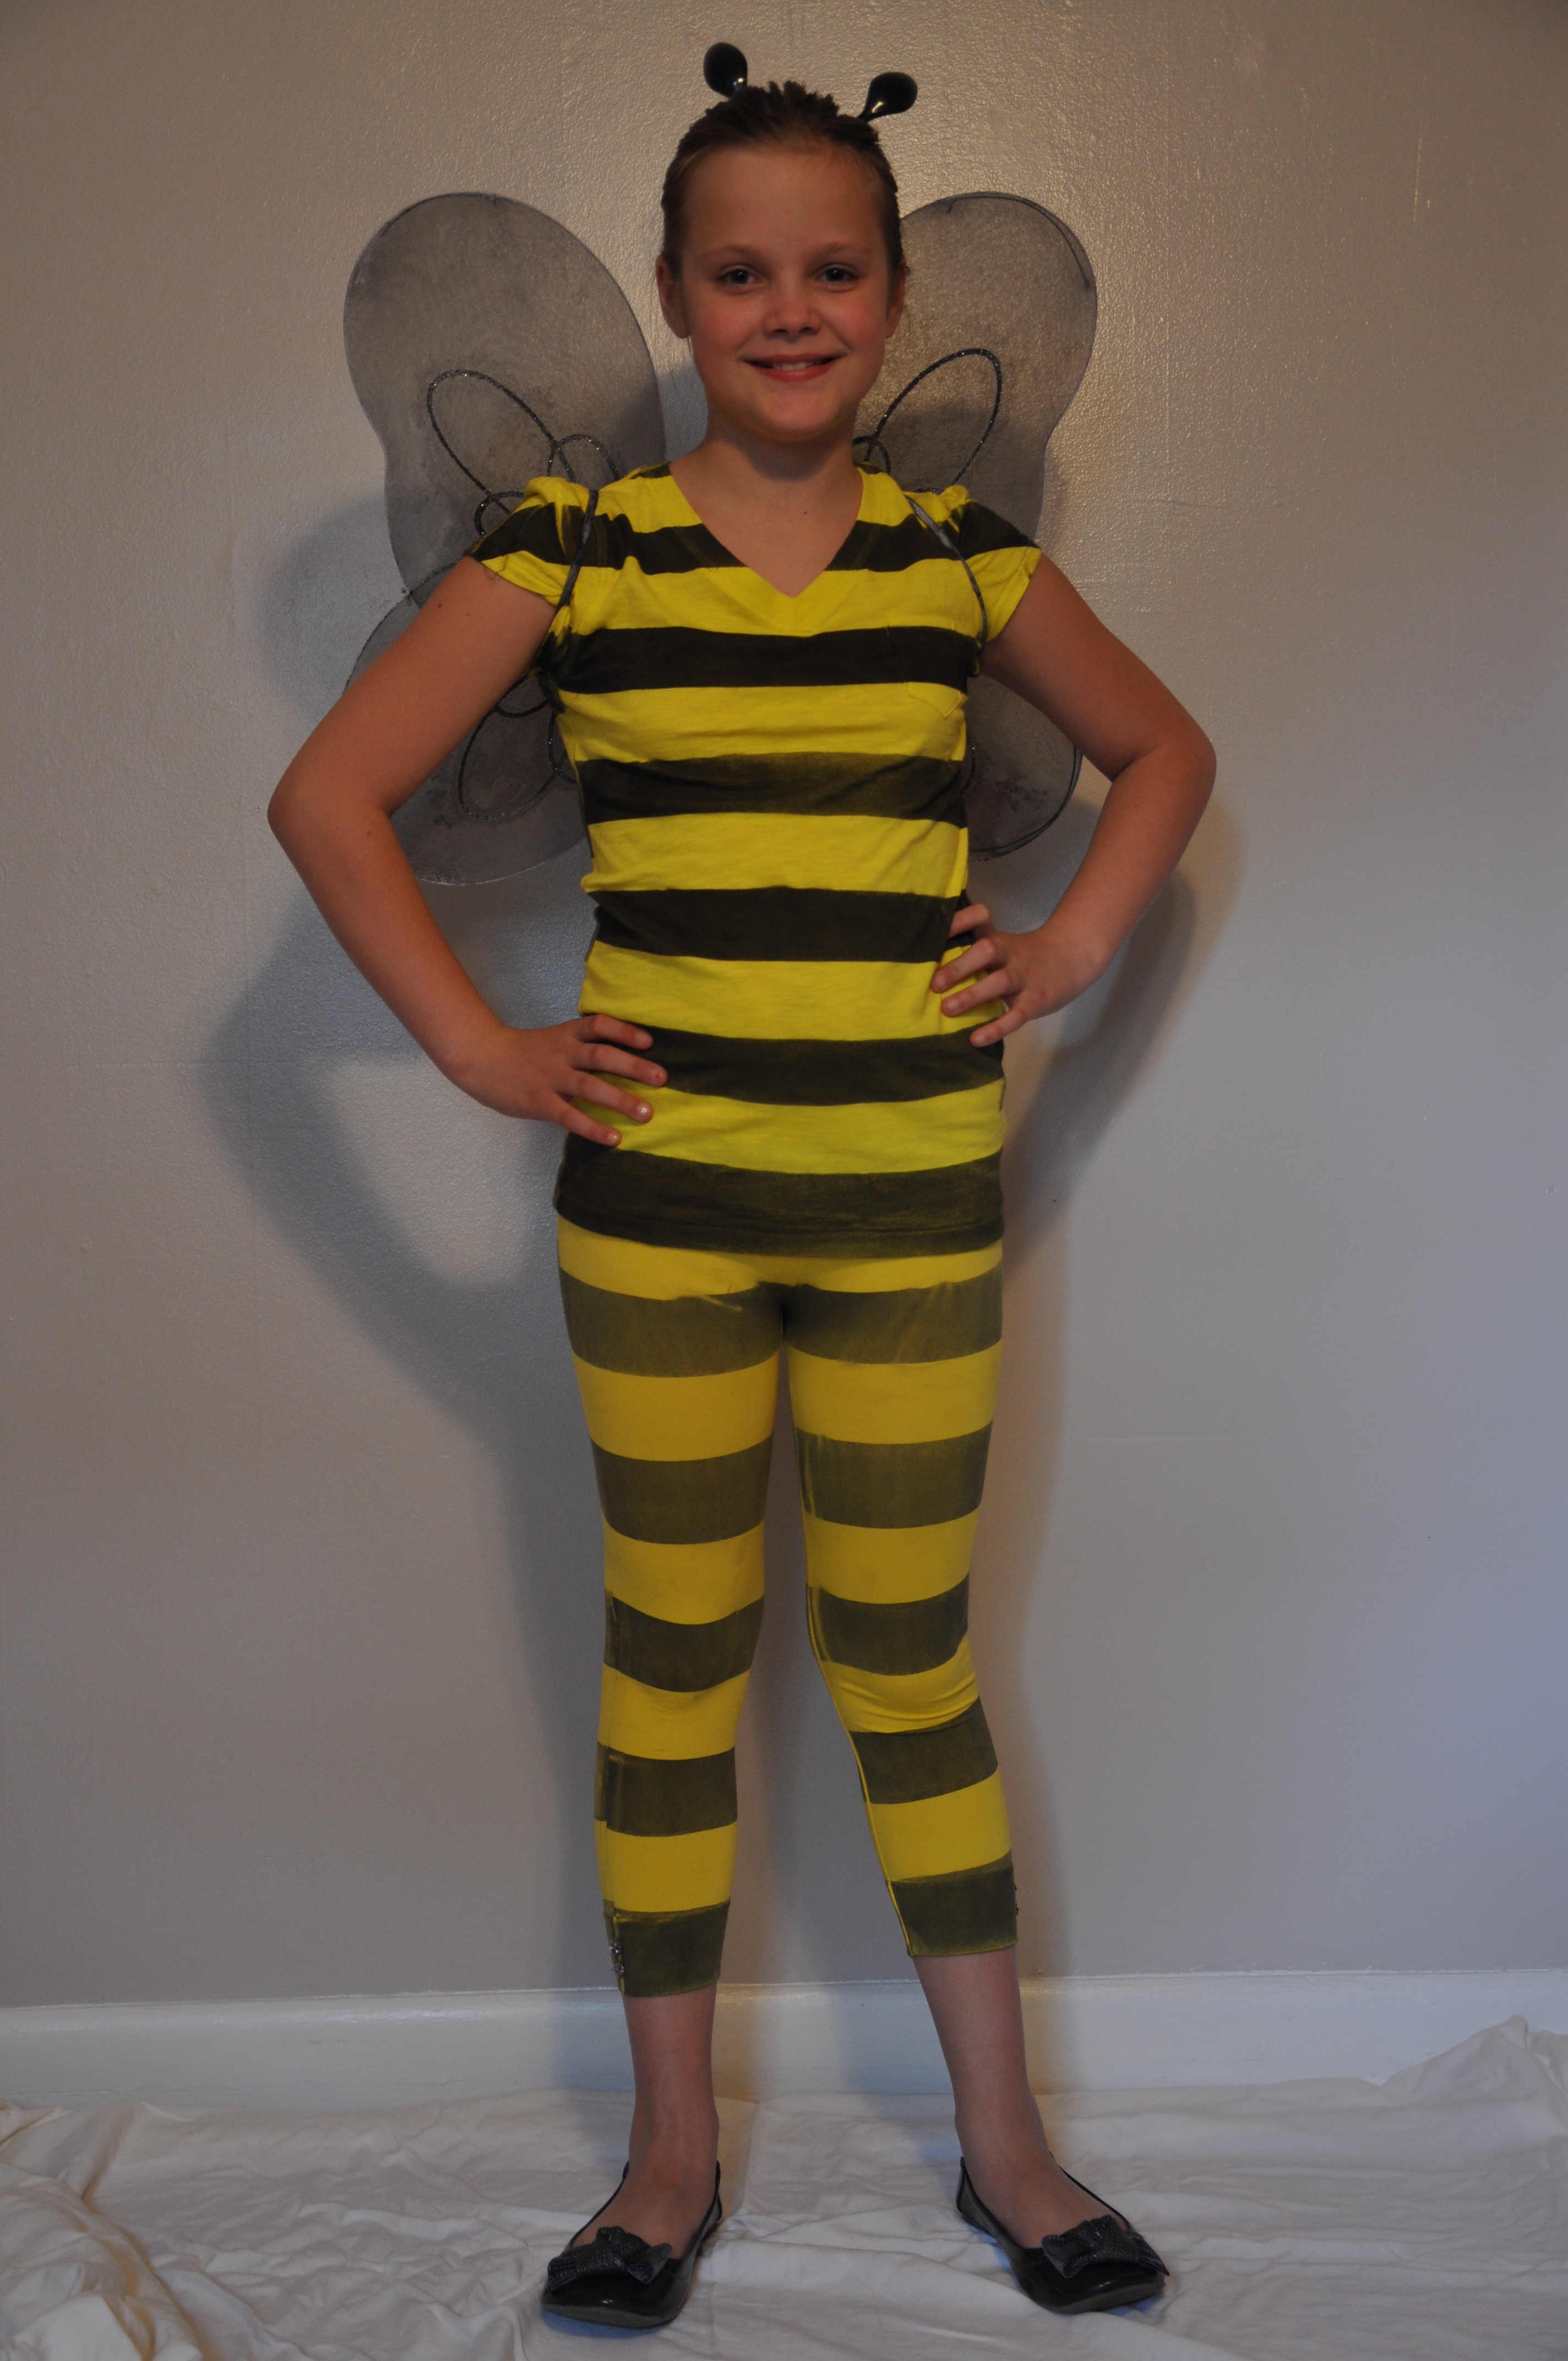 Homemade Bumblebee Costume  sc 1 st  Mommysavers & Homemade Bumblebee Costume | Mommysavers